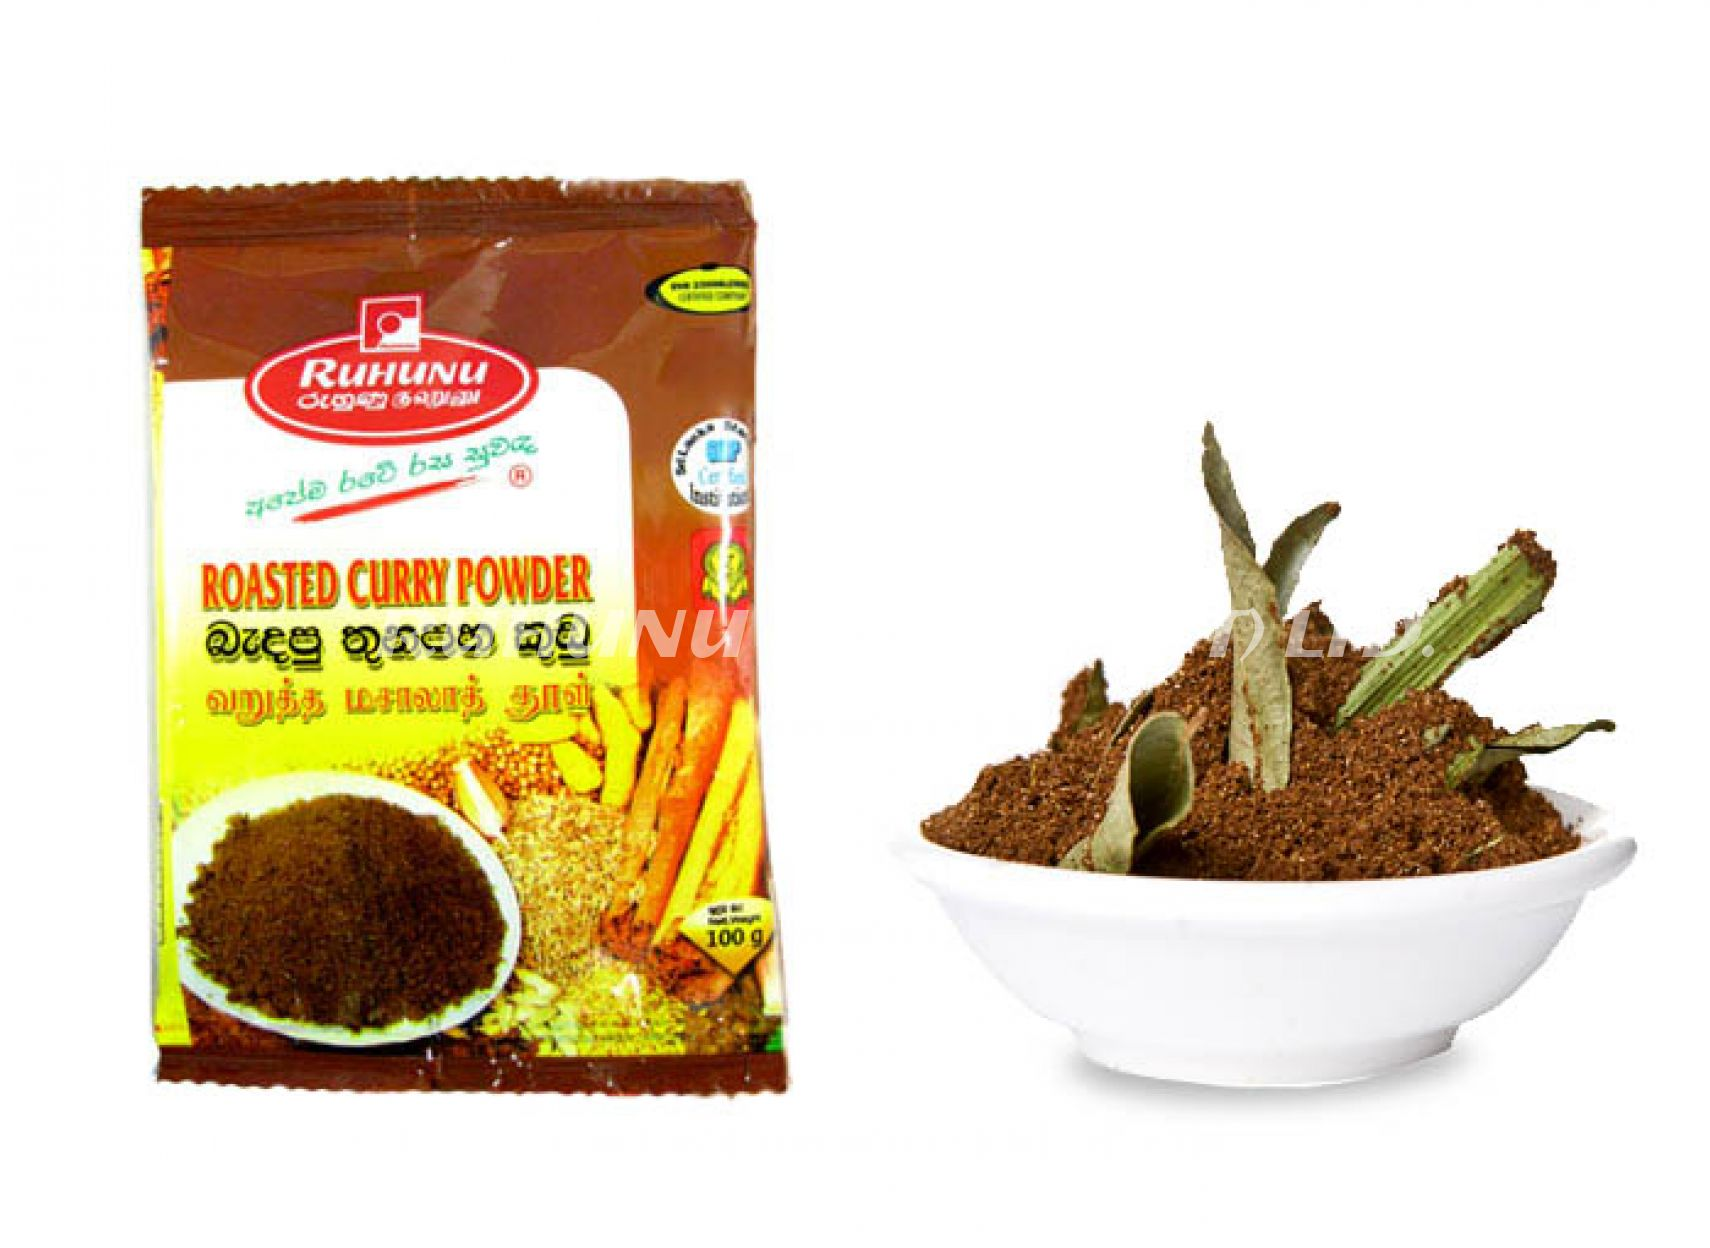 Ruhunu Roasted Curry Powder